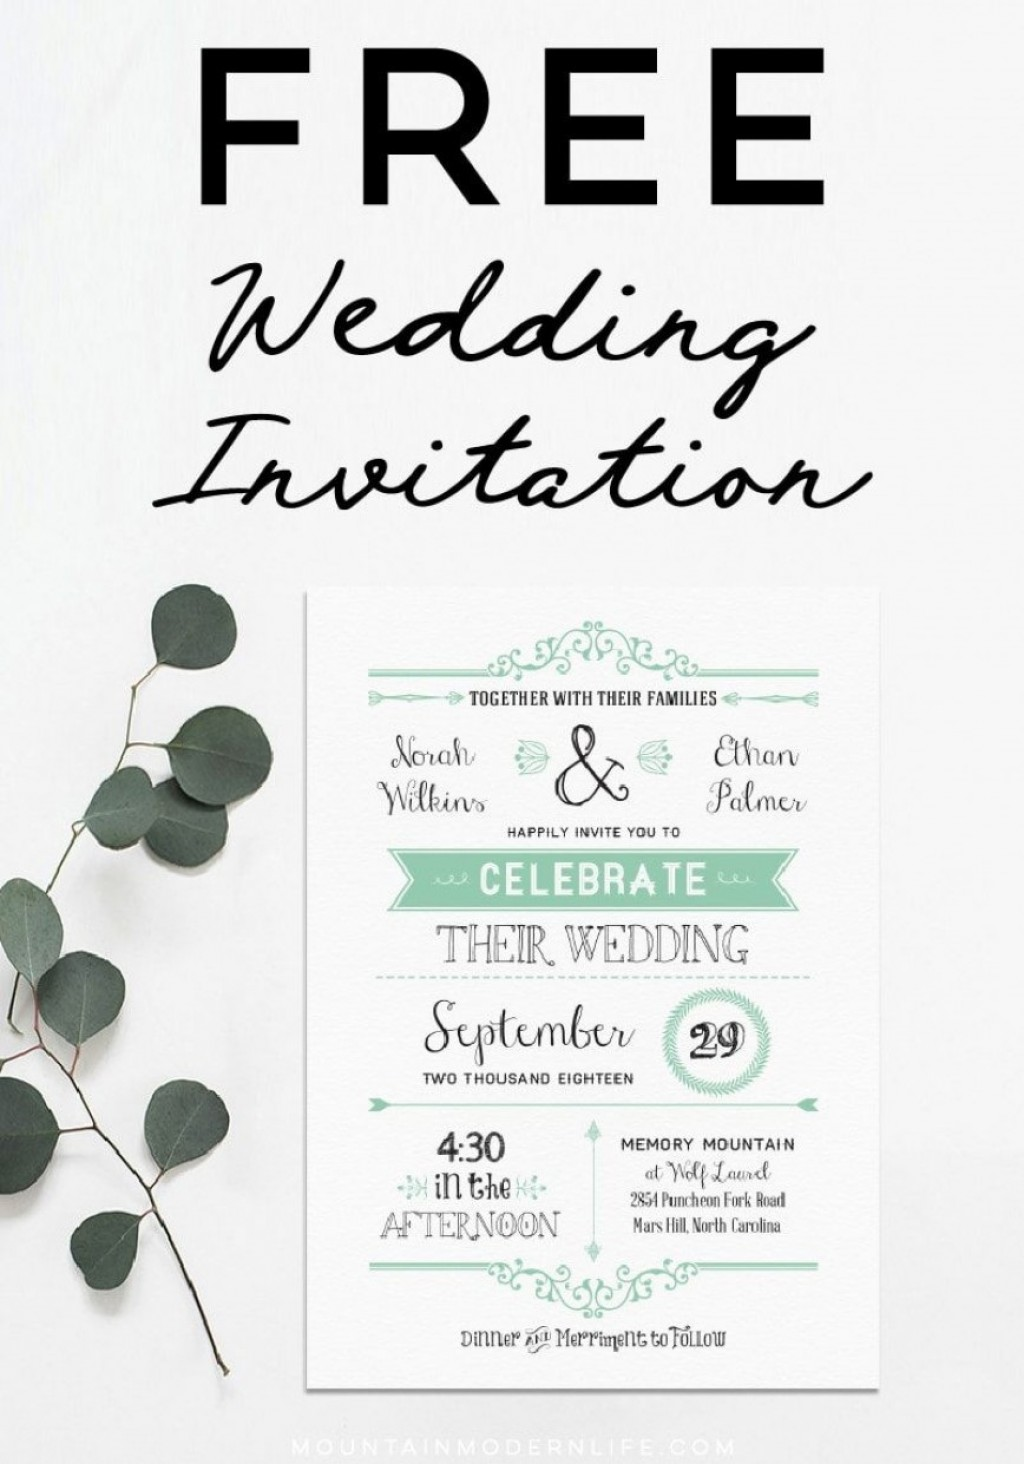 003 Unbelievable Wedding Invitation Template Free Inspiration  Card Psd For Word Muslim 2007Large